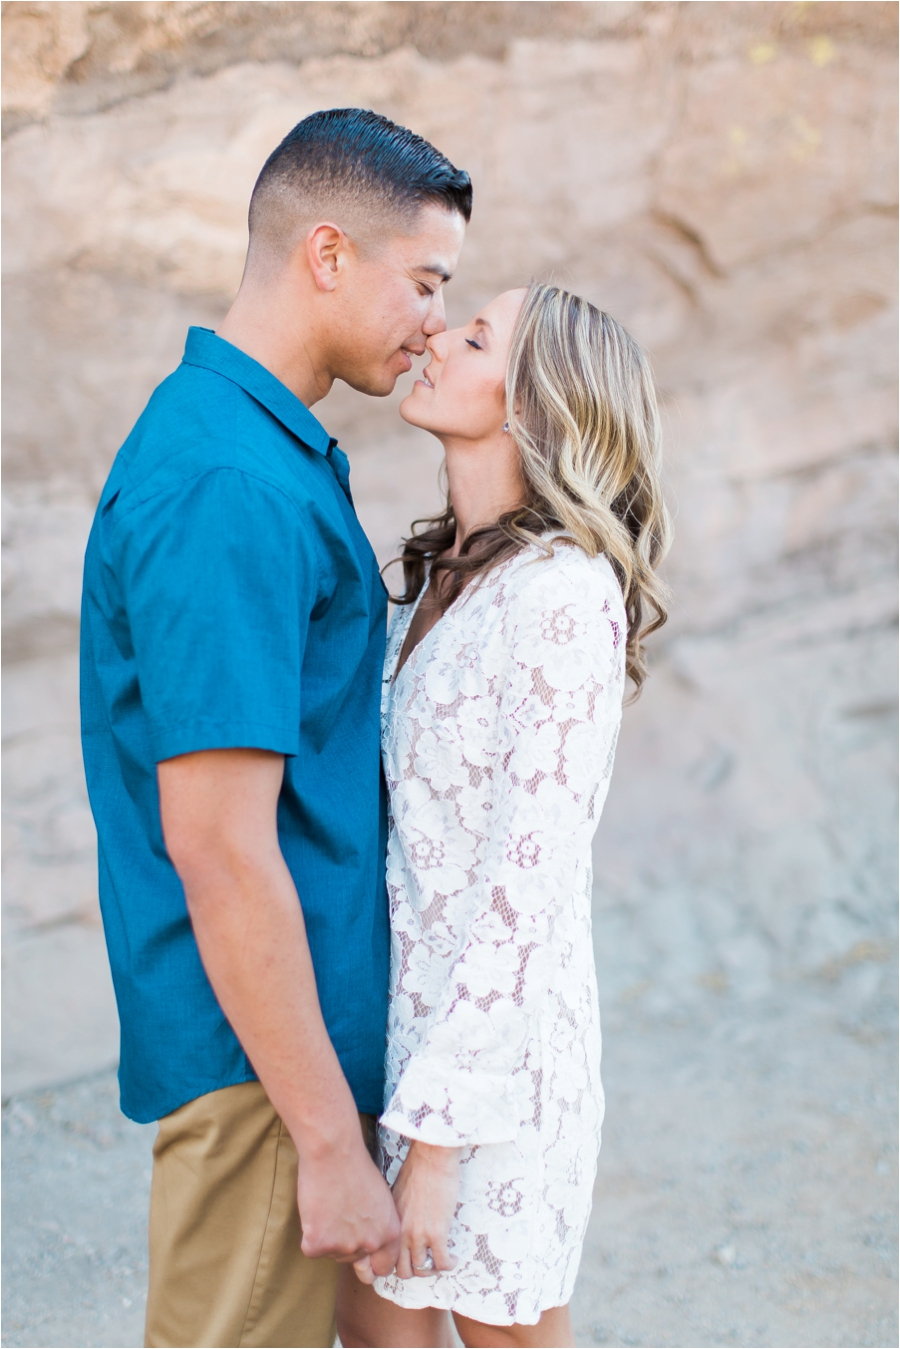 vasquez-rocks-engagement-session_taylor-kinzie-photography_0724